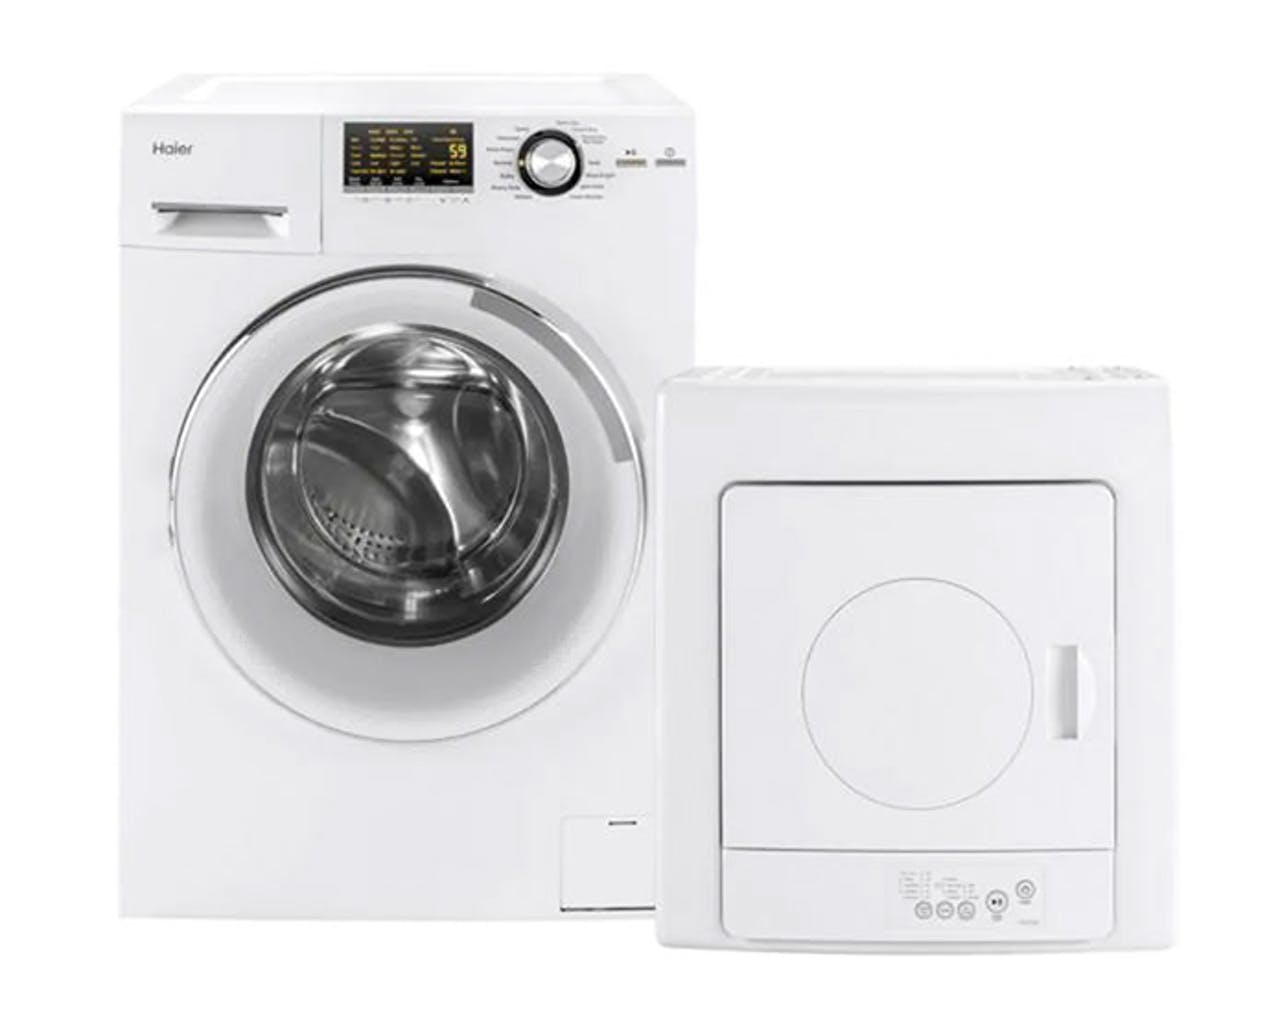 Product support photo of a Haier washer and stackable dryer